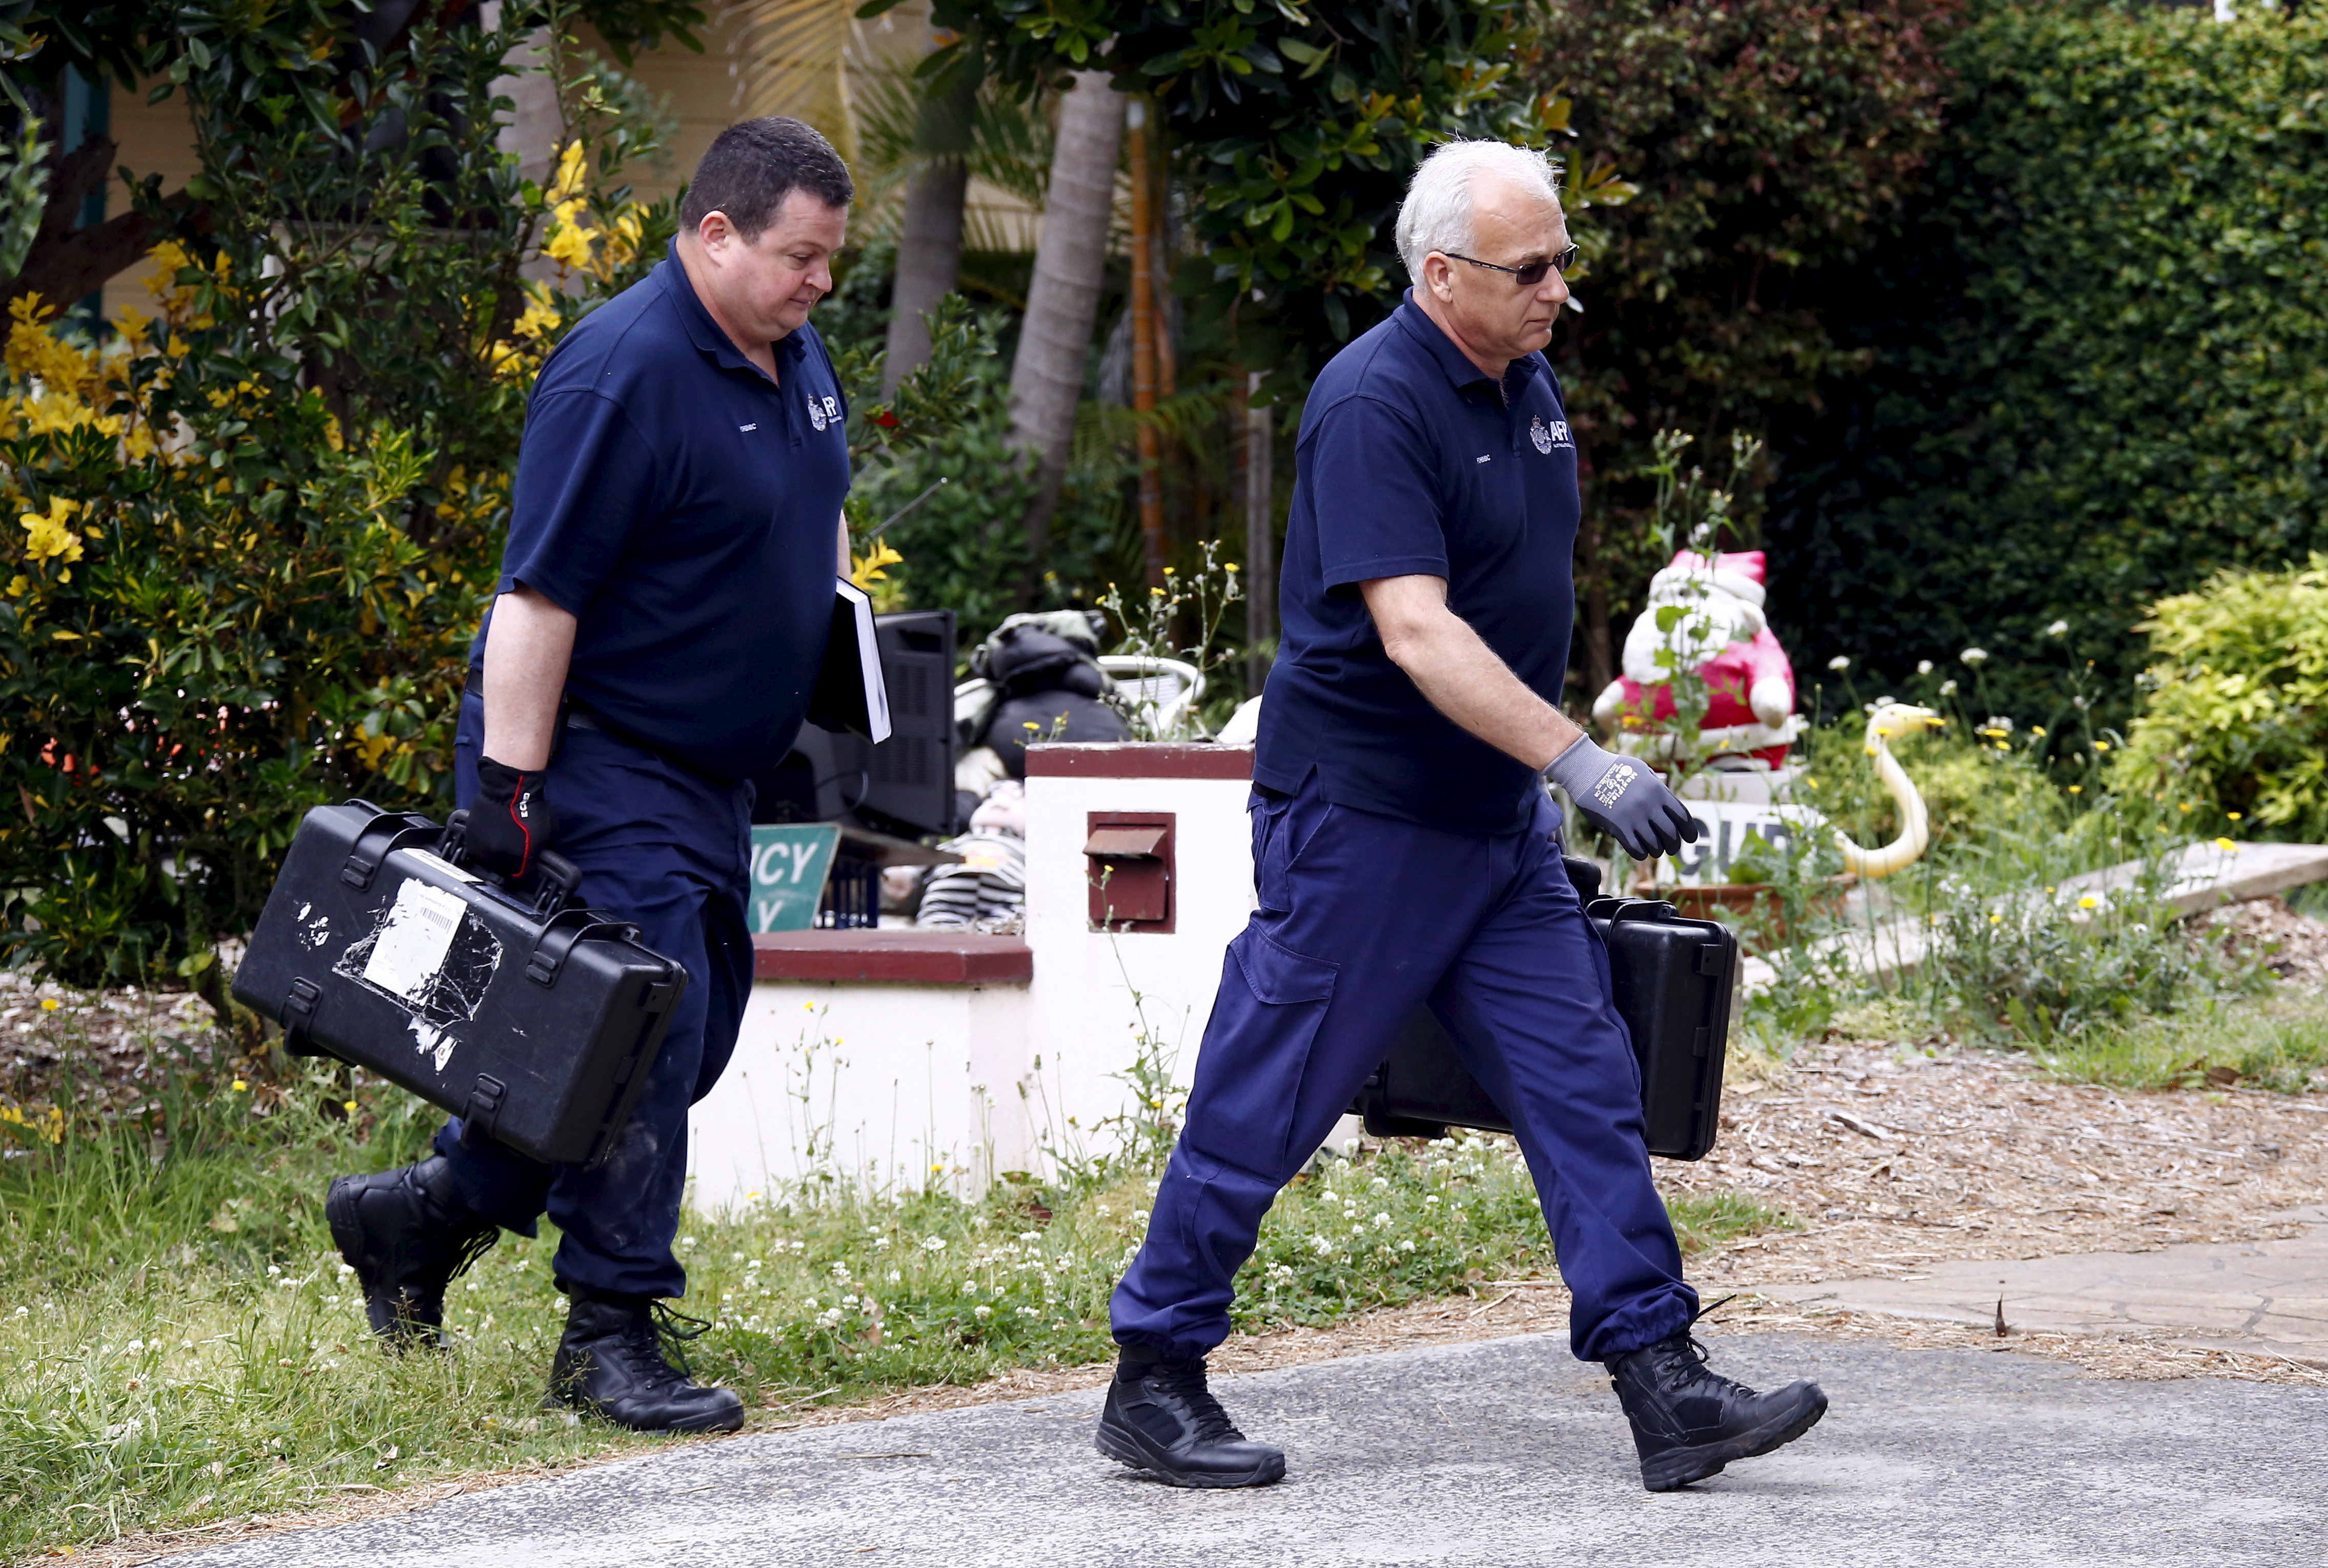 Australian federal police officers carry equipment into a house after arresting a man during early morning raids in western Sydney on Oct. 7, 2015